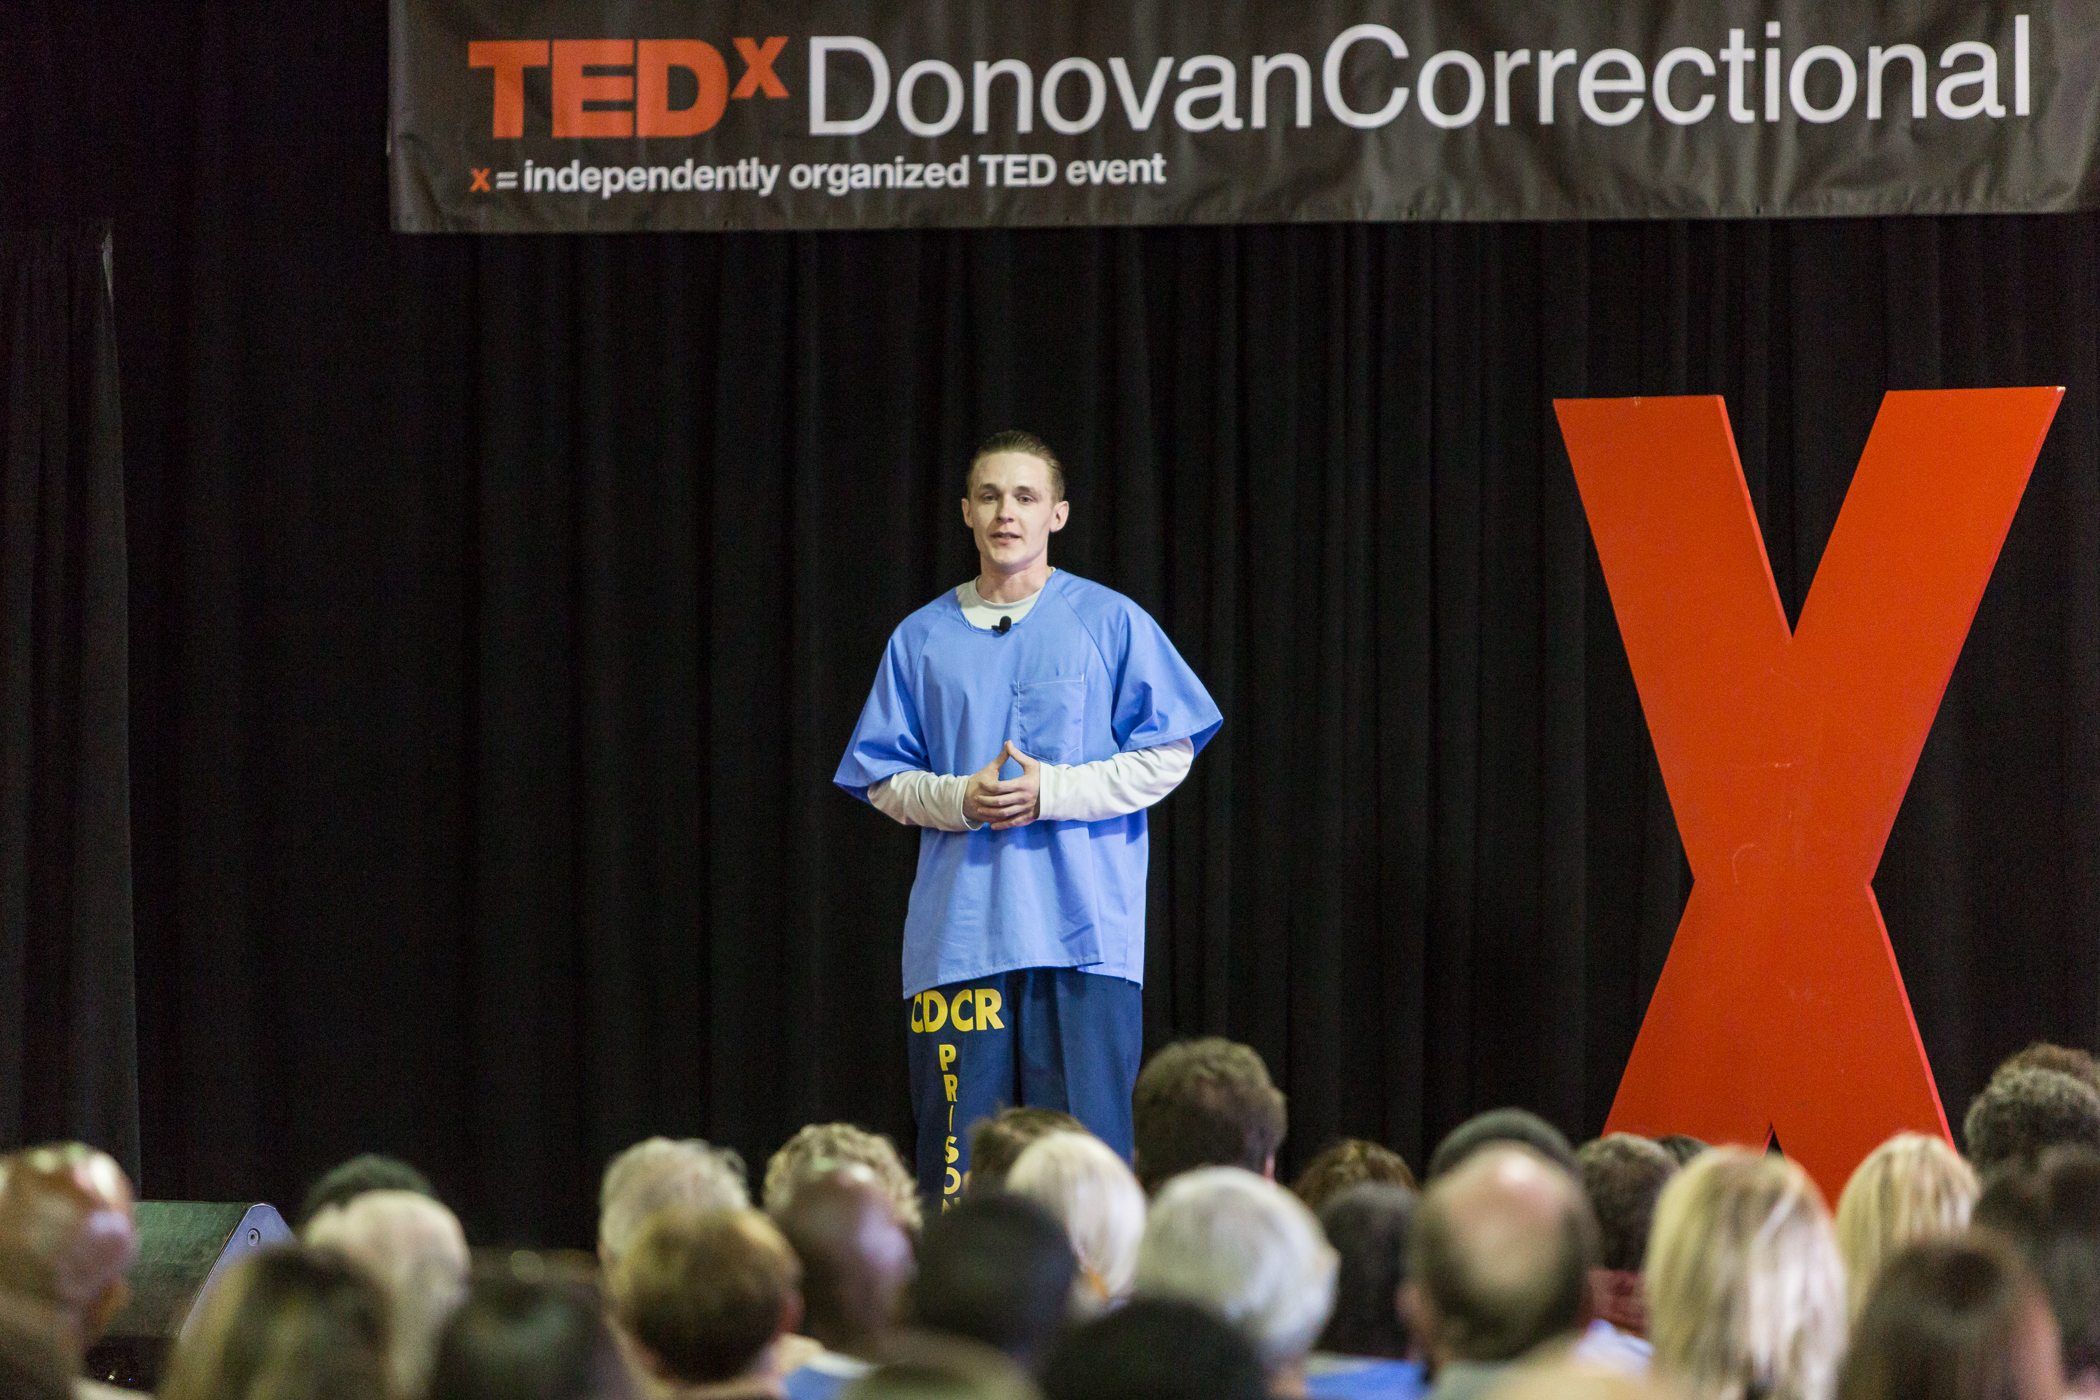 TEDxDonovanCorrectional_2018 (Natalia Brown)_5.jpg